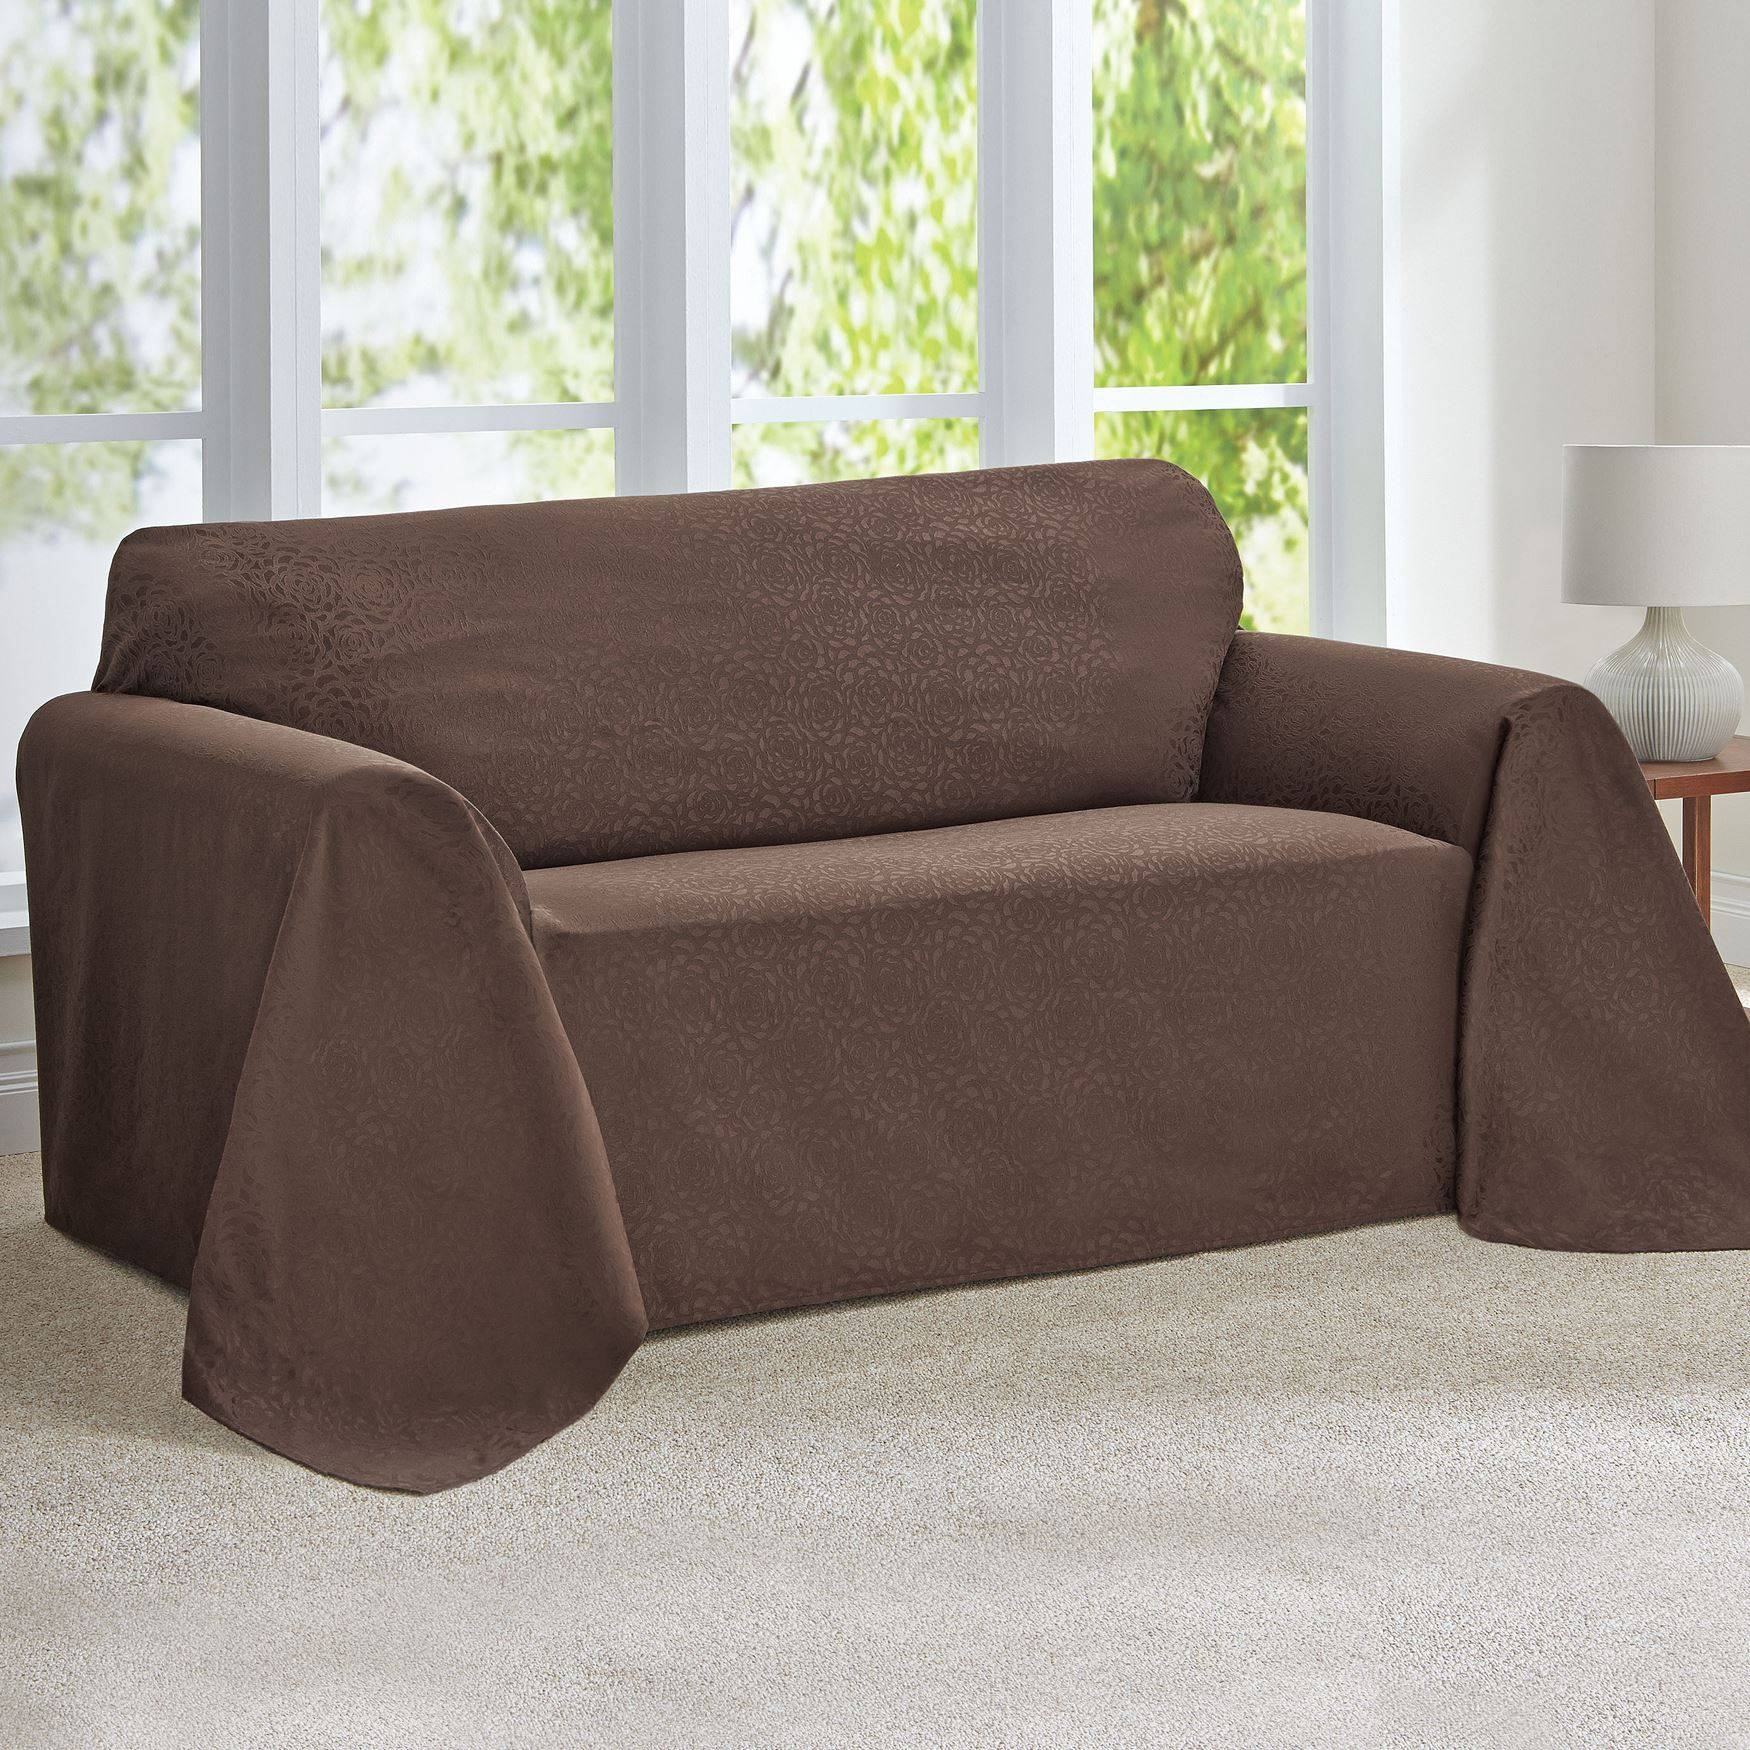 Furniture: Wonderful Walmart Couch Covers Design For Alluring within Covers For Sofas And Chairs (Image 8 of 15)